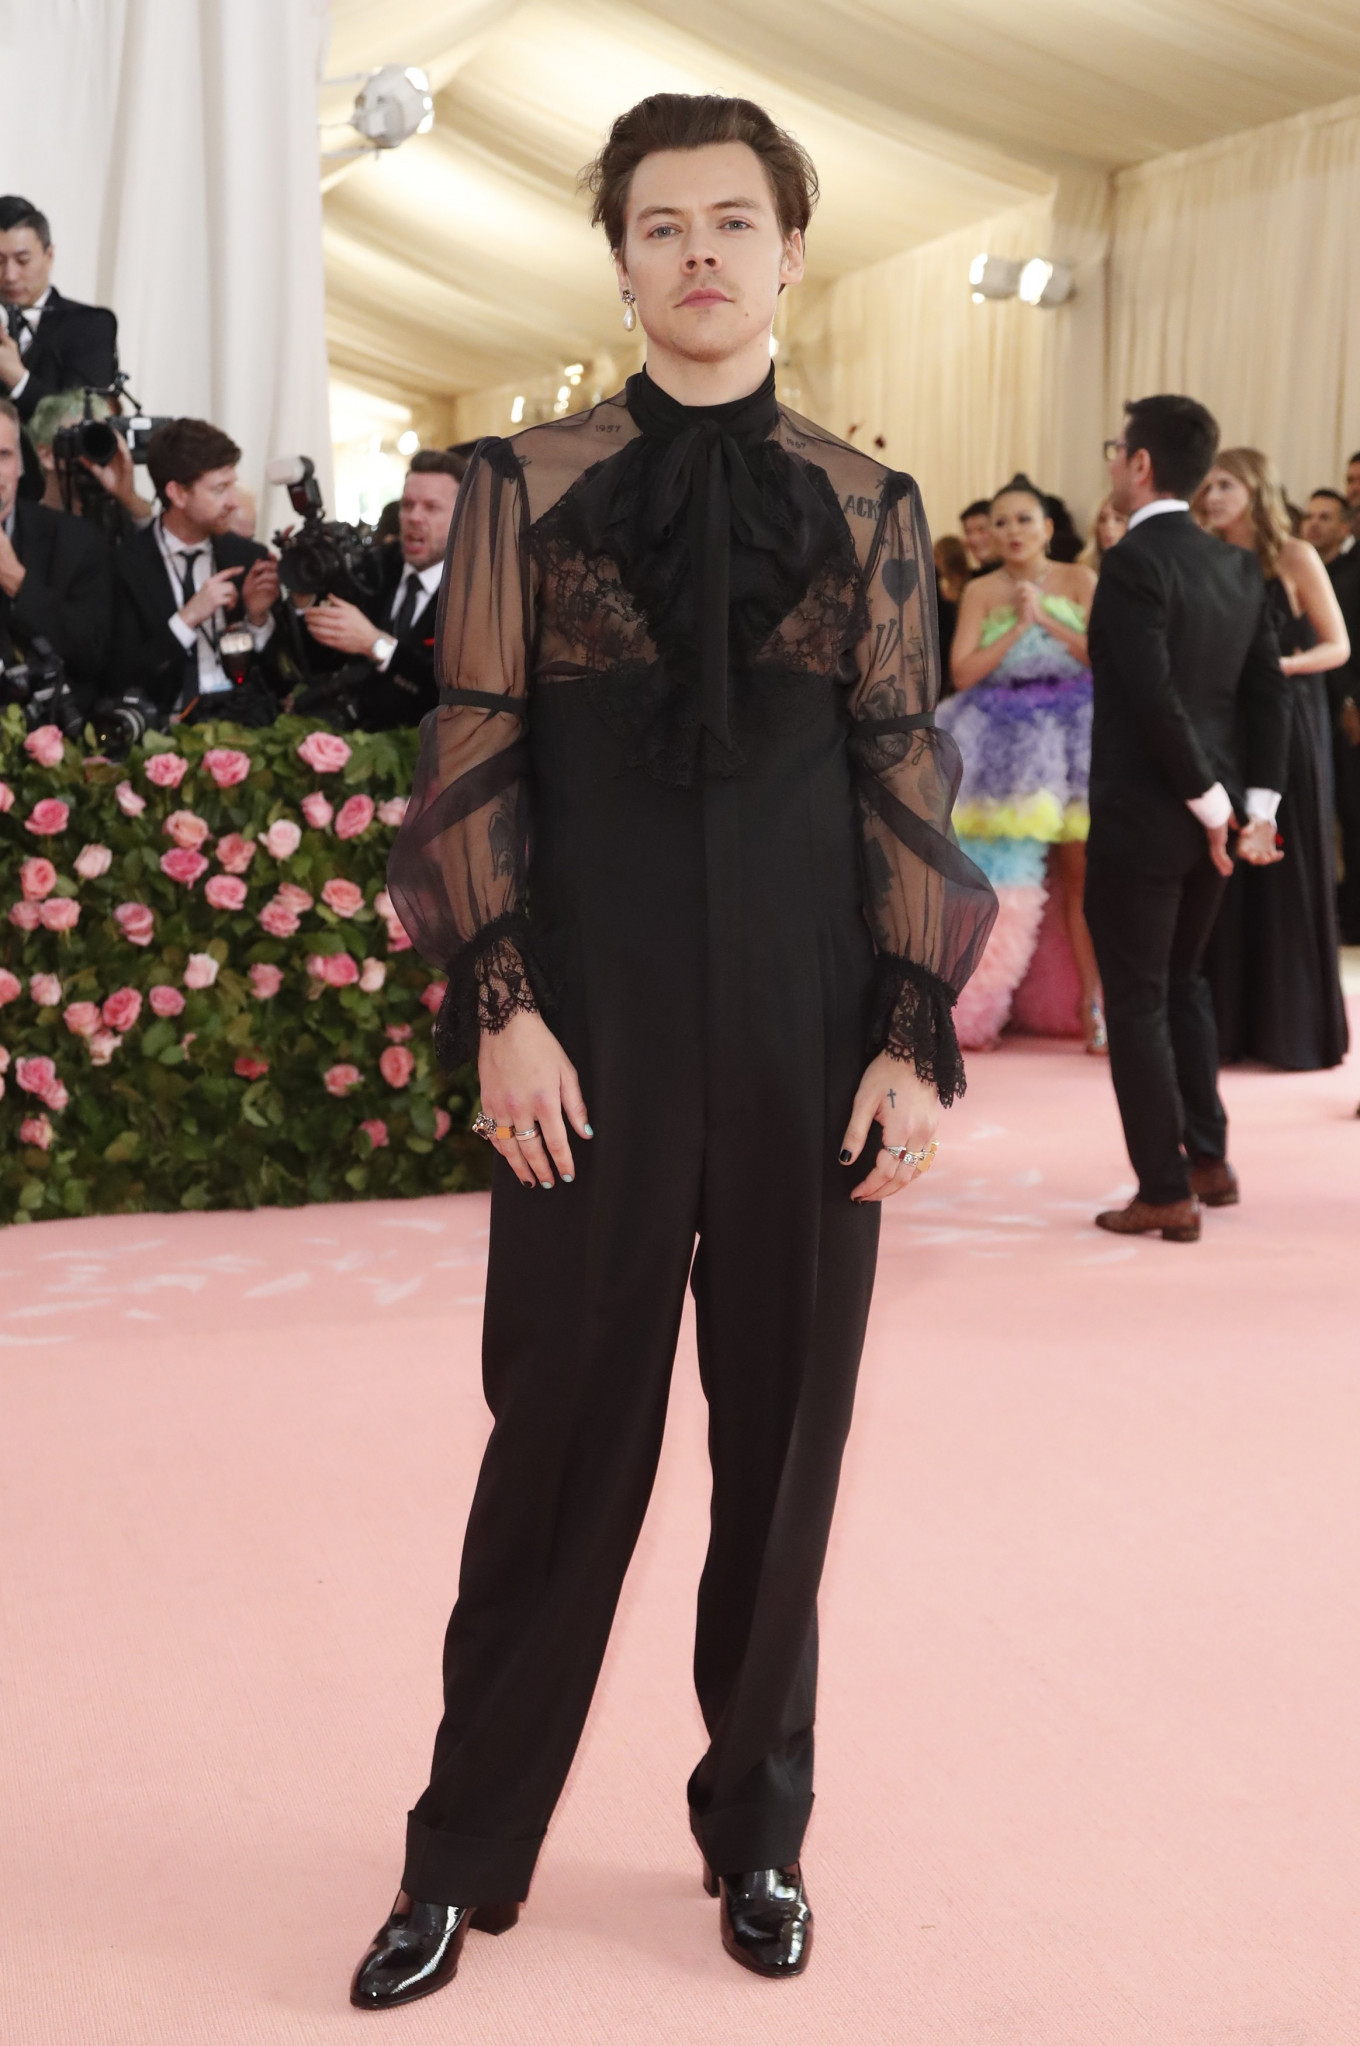 Harry Styles at the Metropolitan Museum of Art Costume Institute Gala in New York City, US, on May 6, 2019.